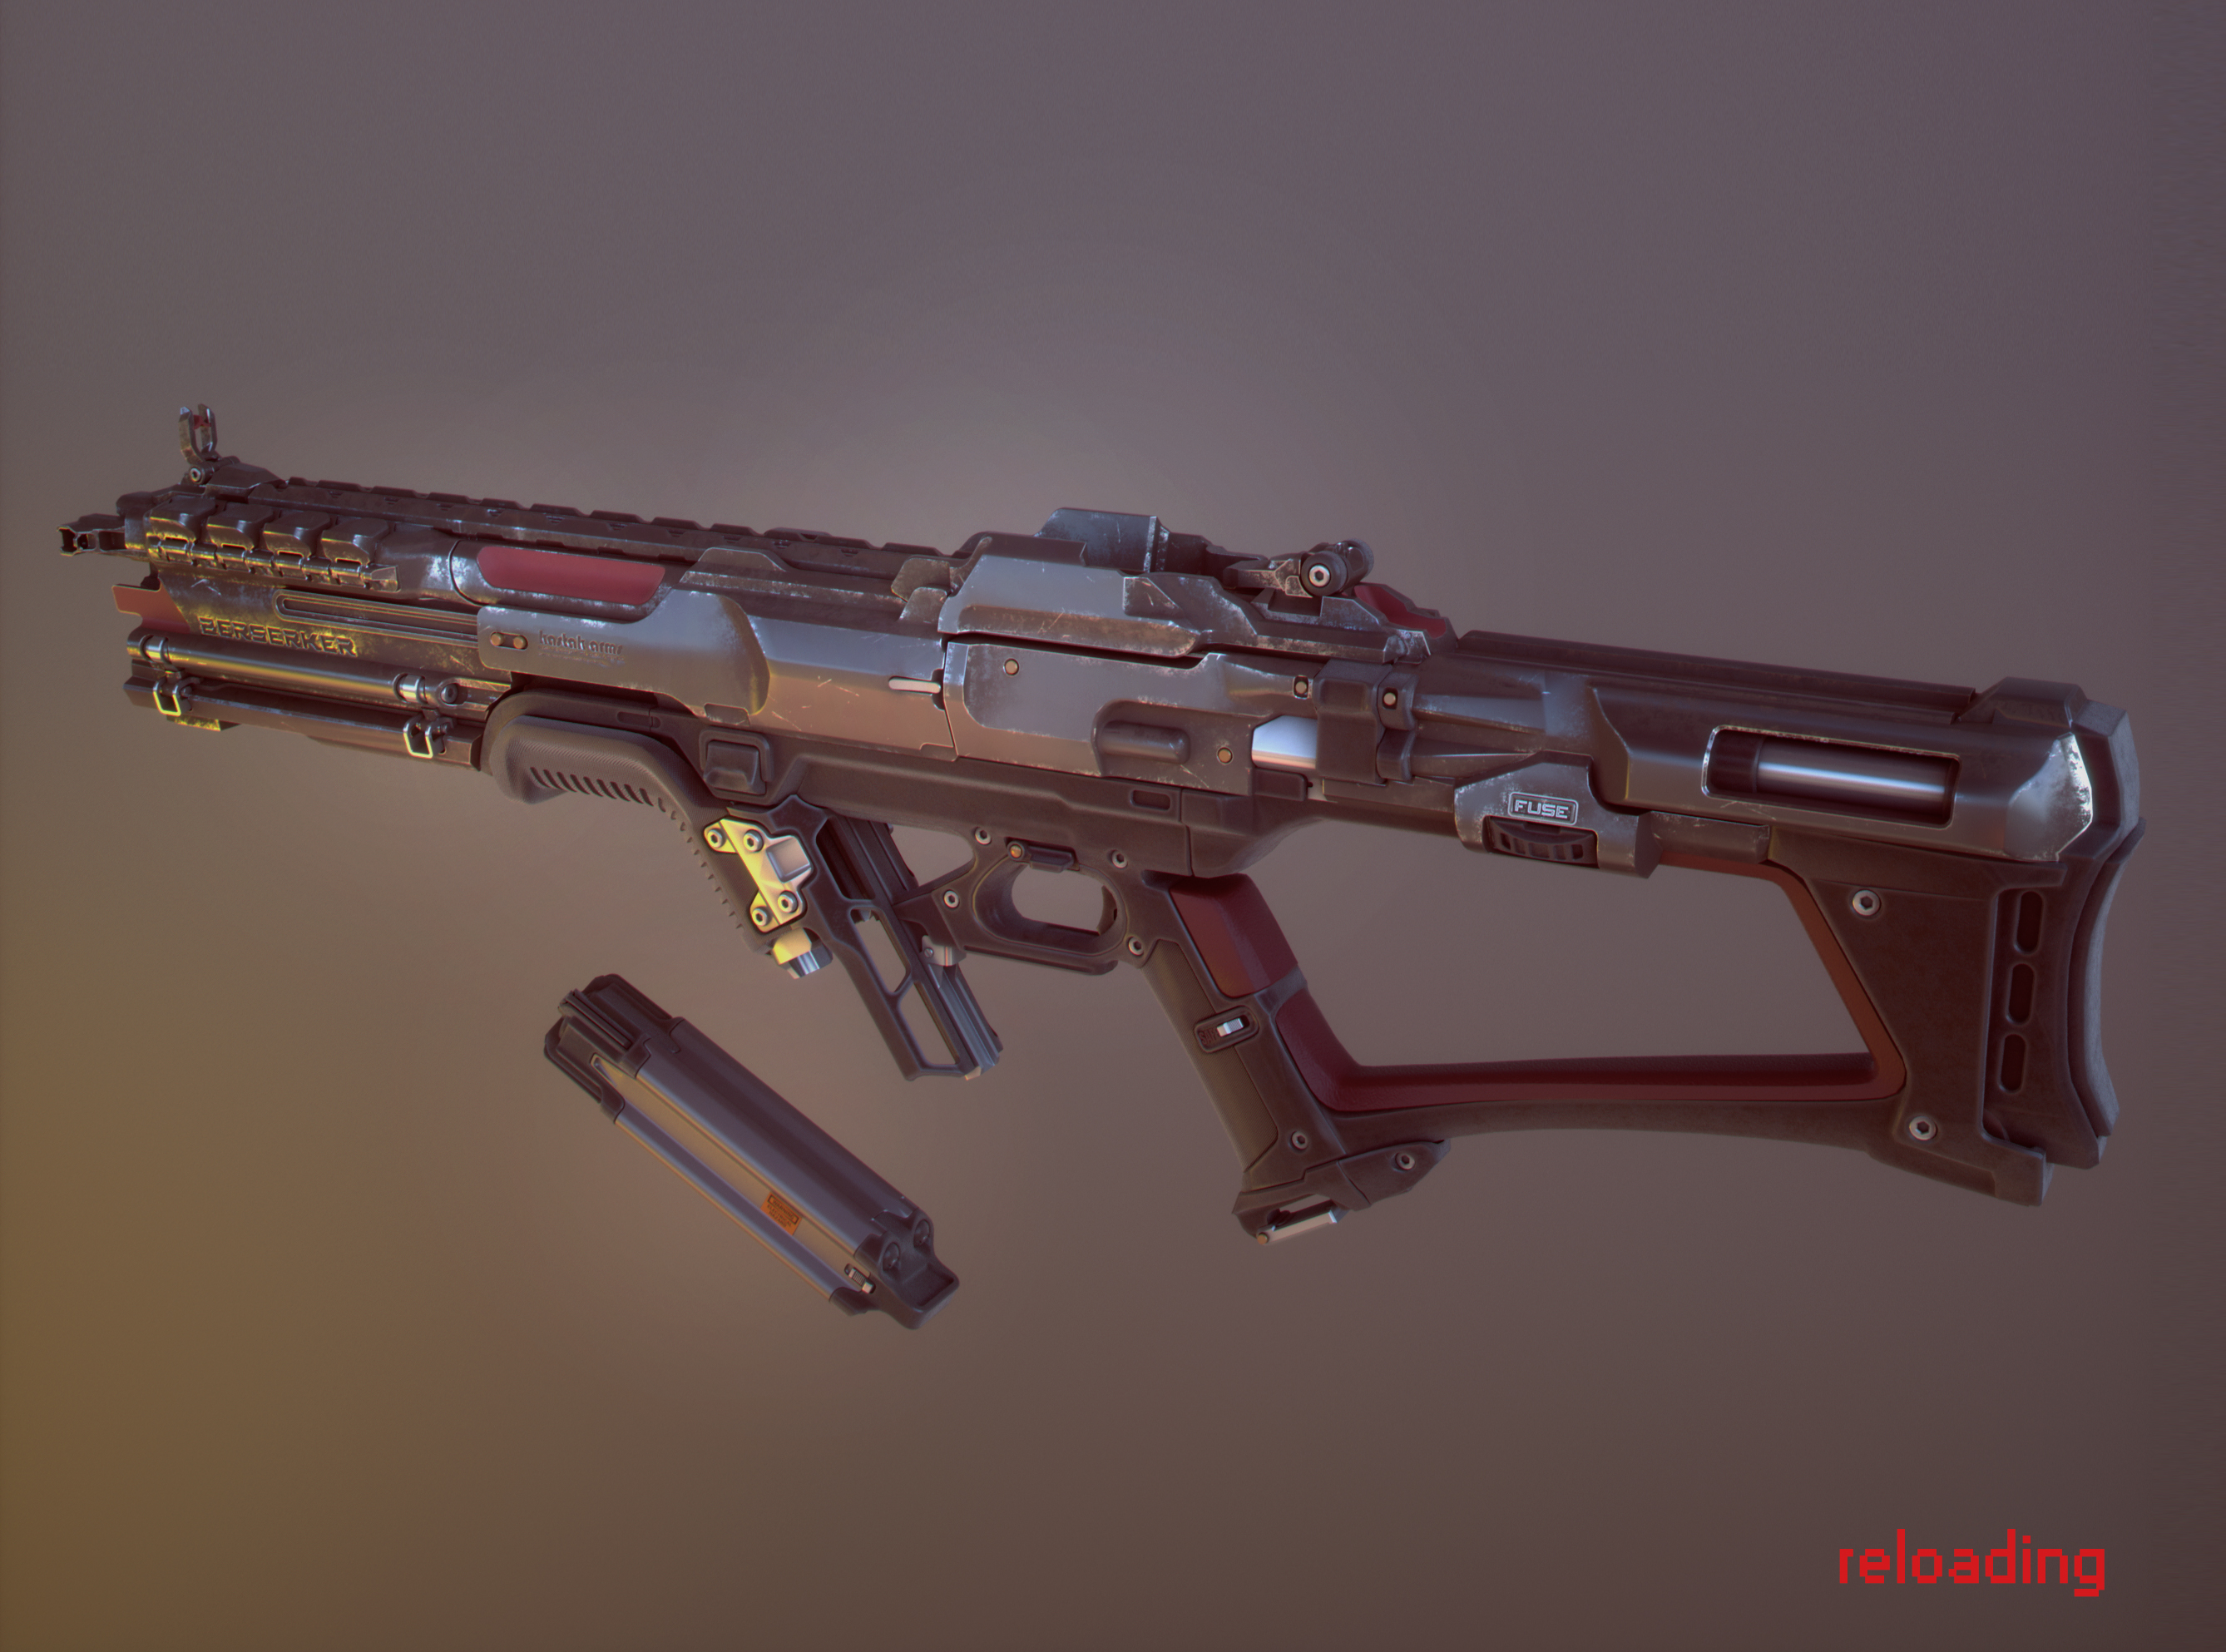 Kastak_Energy_Assault_Rifle_009.jpg